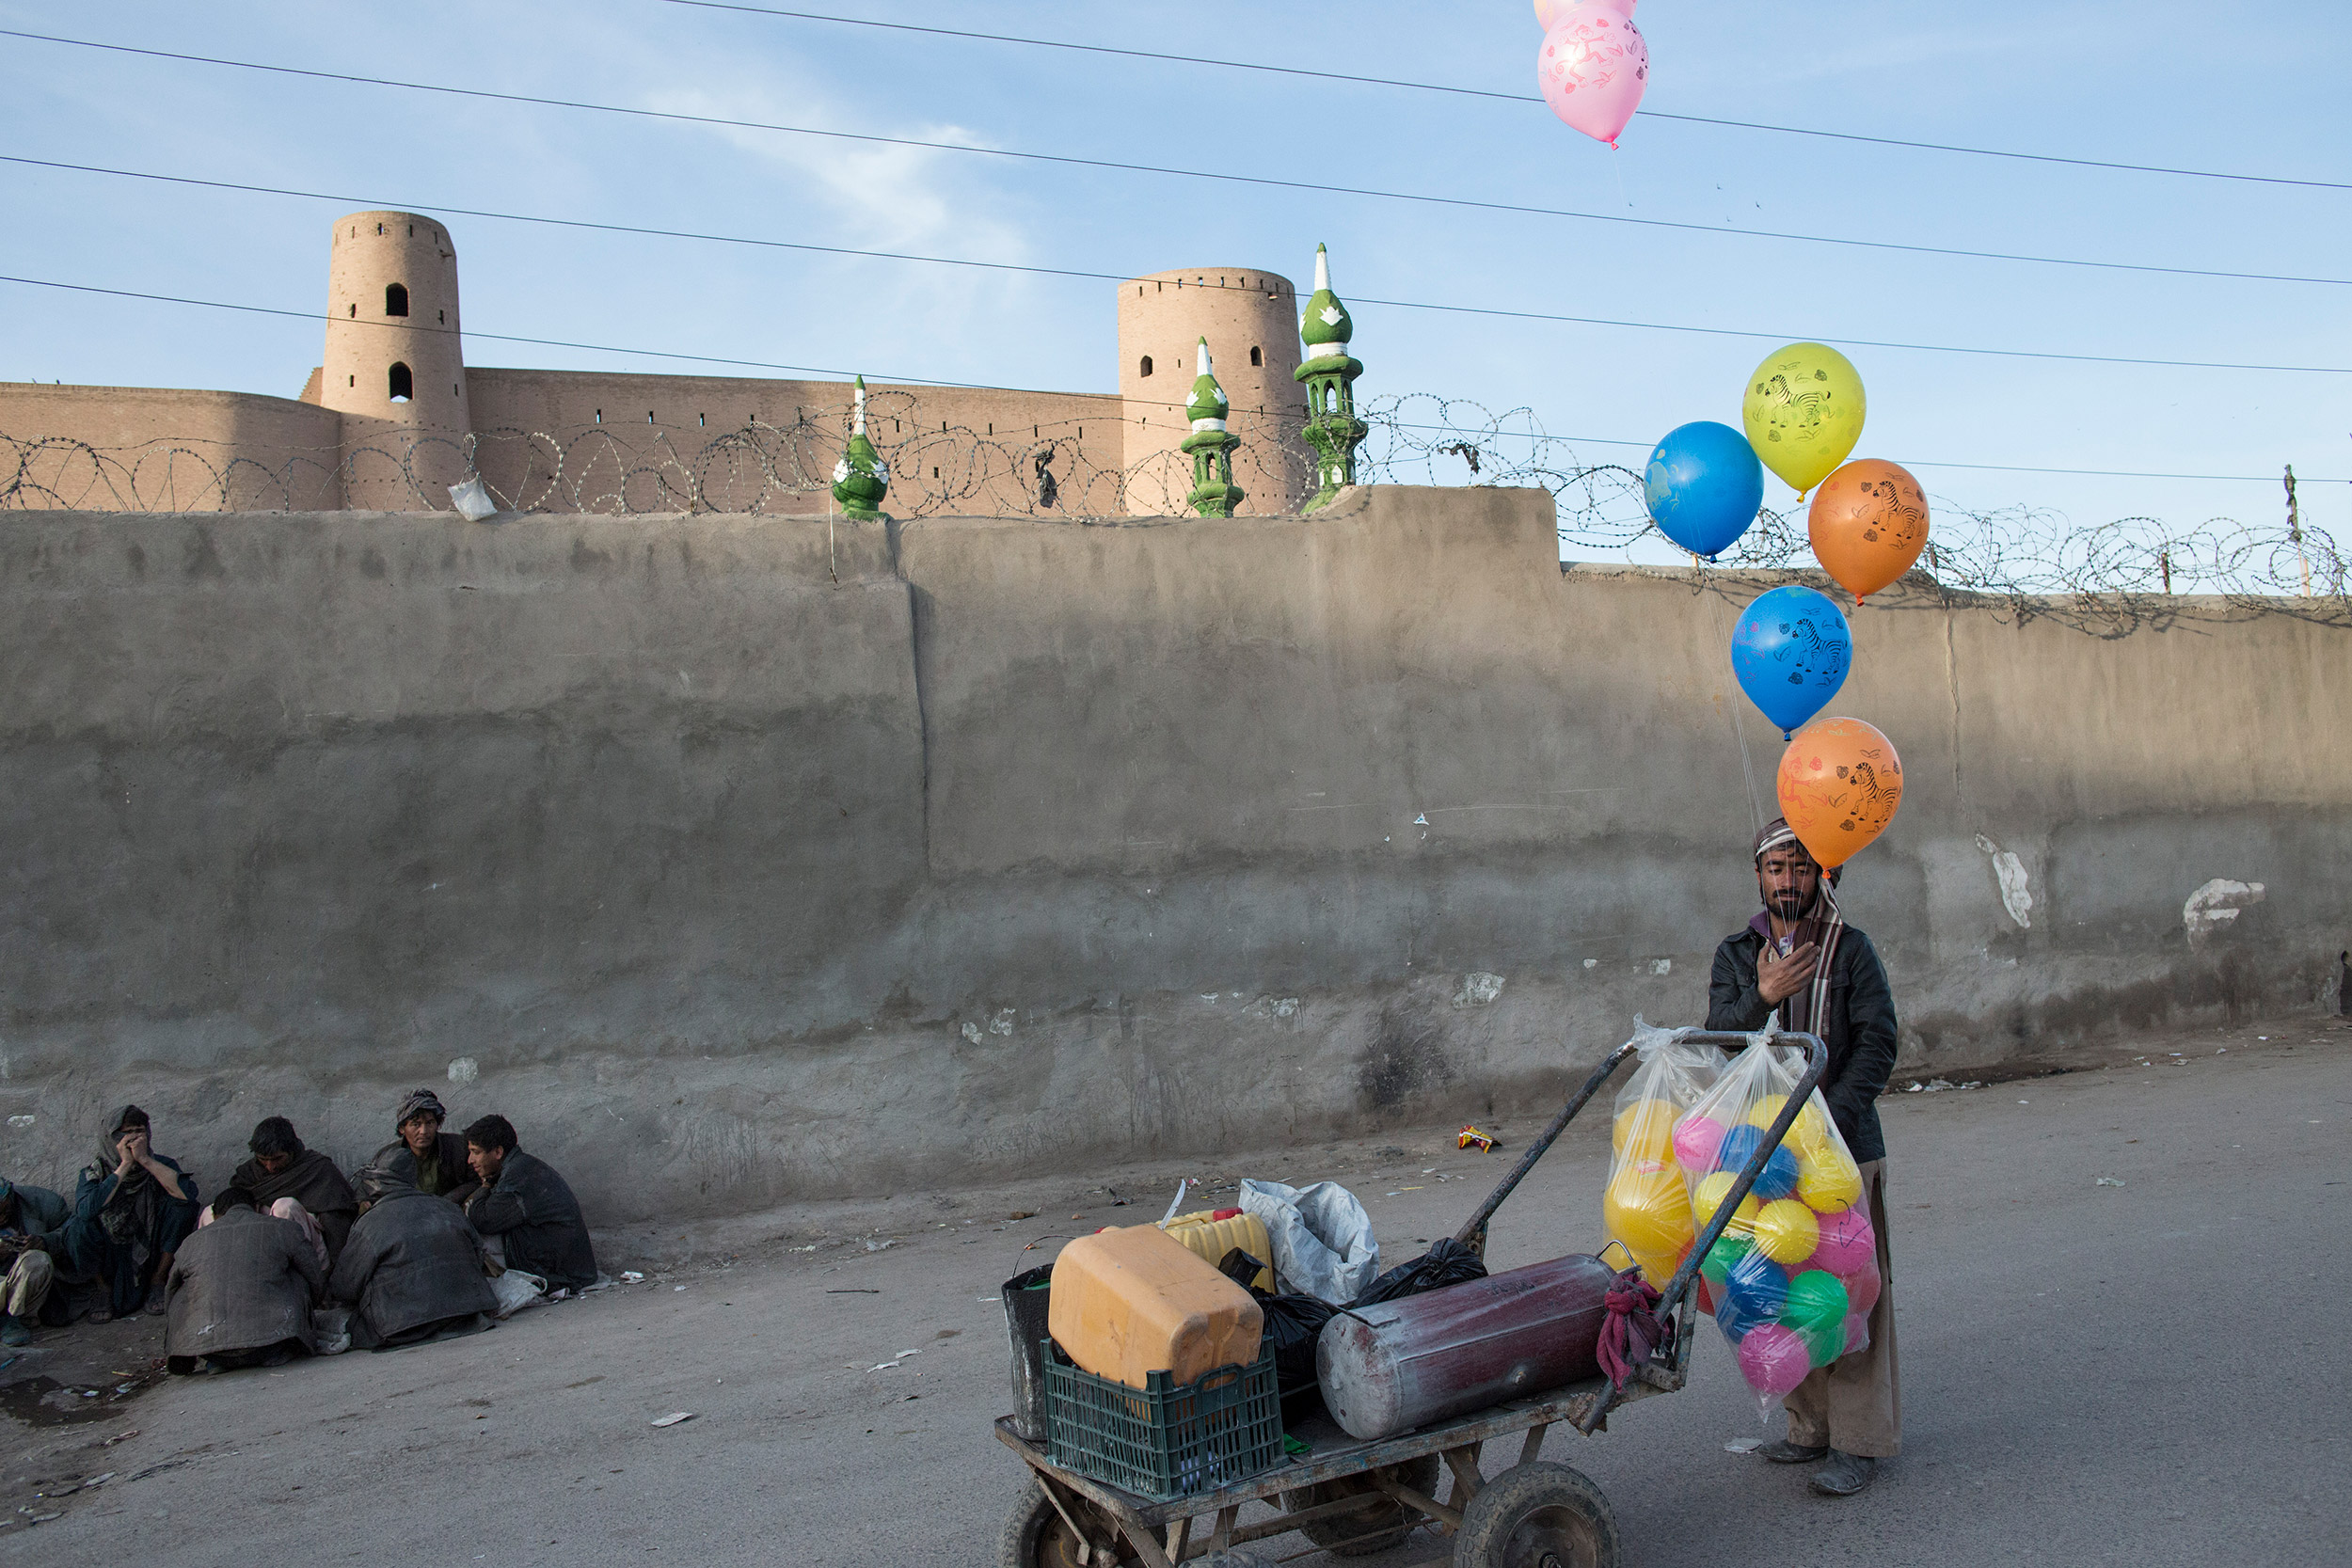 Afghanistan, Herat, March 14, 2016